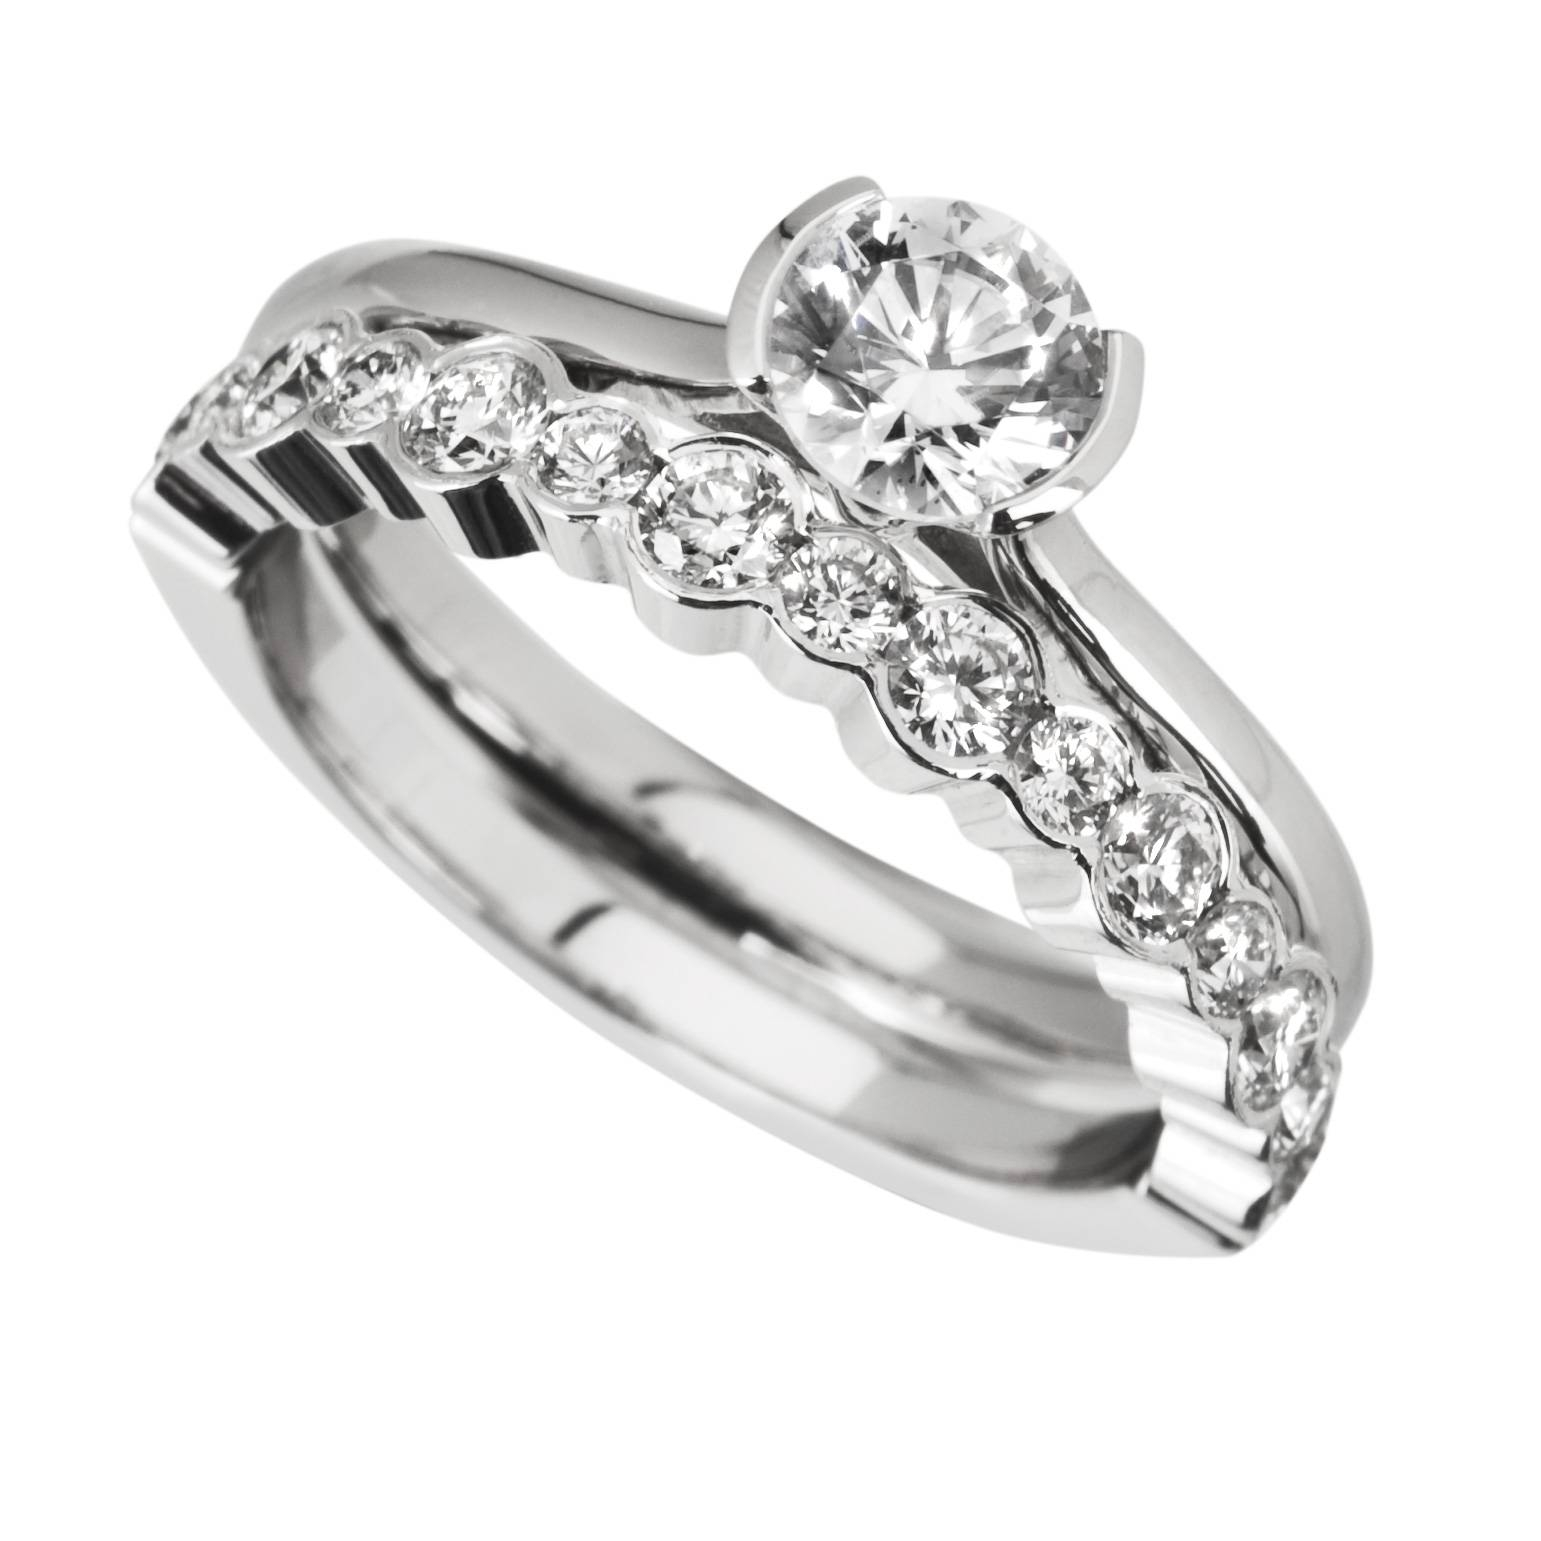 Wedding Rings : Wedding Rings With Engagement Ring Set Engagement In Wedding And Engagement Ring Sets (View 14 of 15)